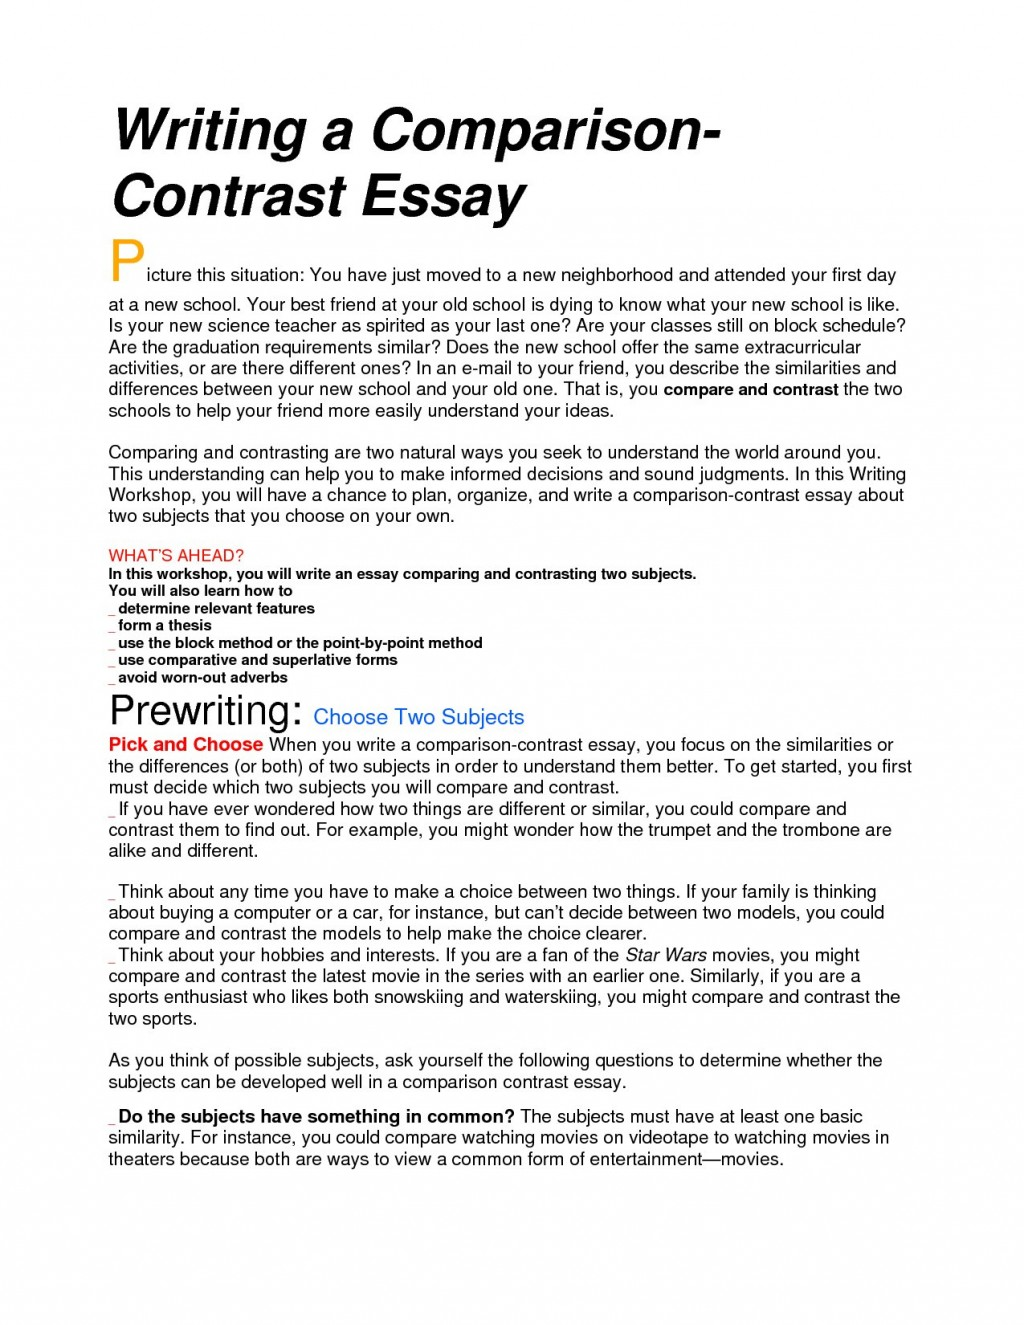 021 Research Essay Introduction Examples How To Start Paper About Kangk Pdf Yourselfllege Opening High School Middlempare Andntrast Beginnings University Phenomenal Compare And Contrast College Outline For Students Paragraph Large